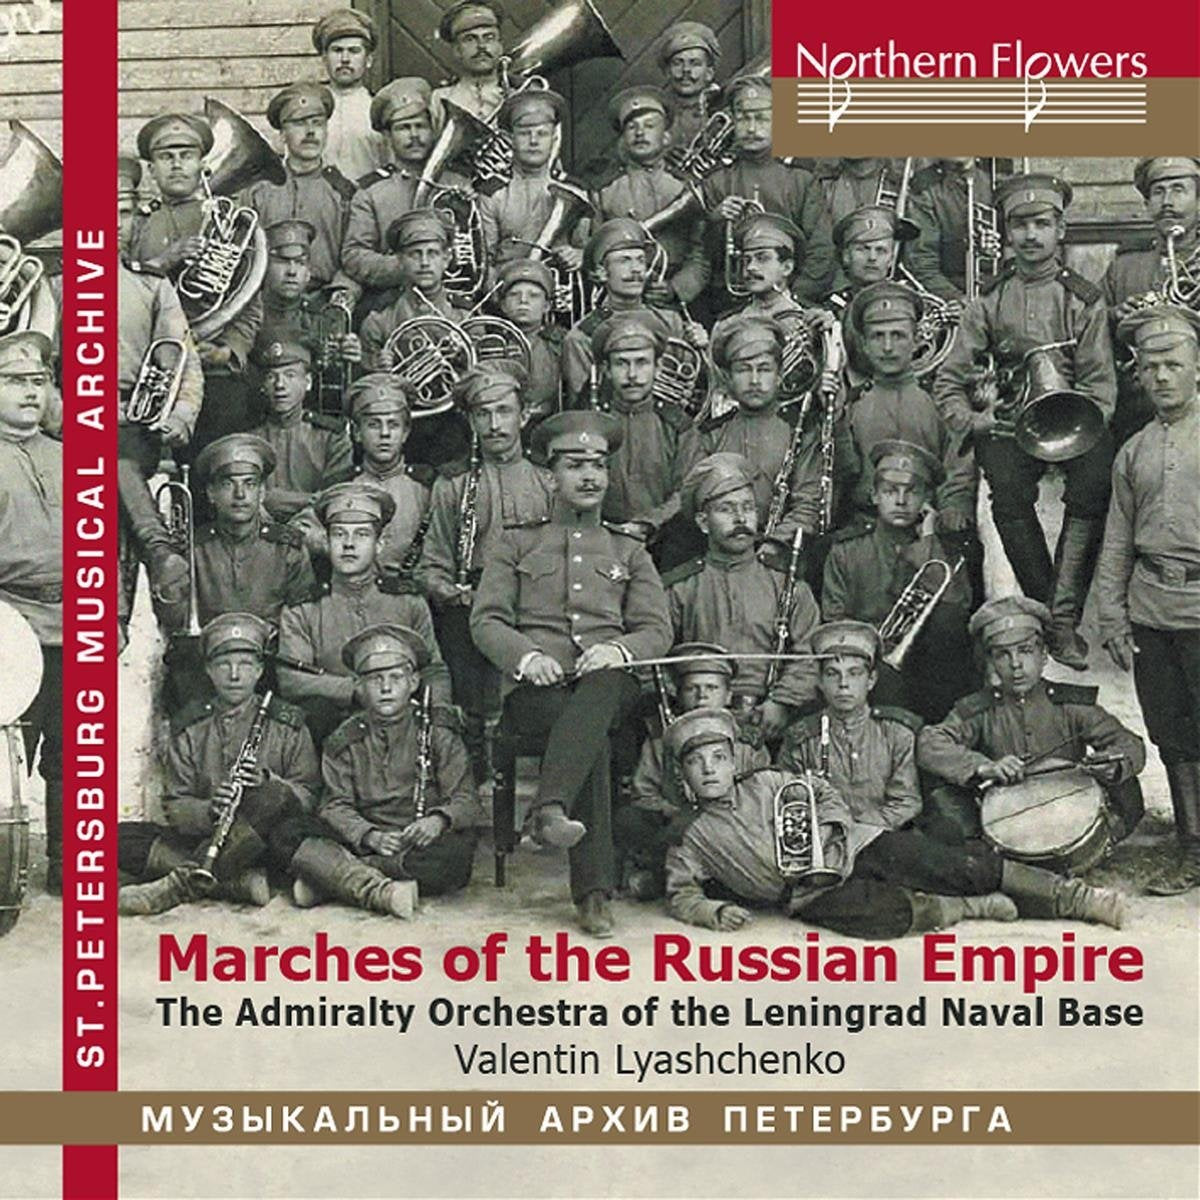 MARCHES OF THE RUSSIAN EMPIRE - ADMIRALTY BAND OF THE LENINGRAD NAVAL BASE